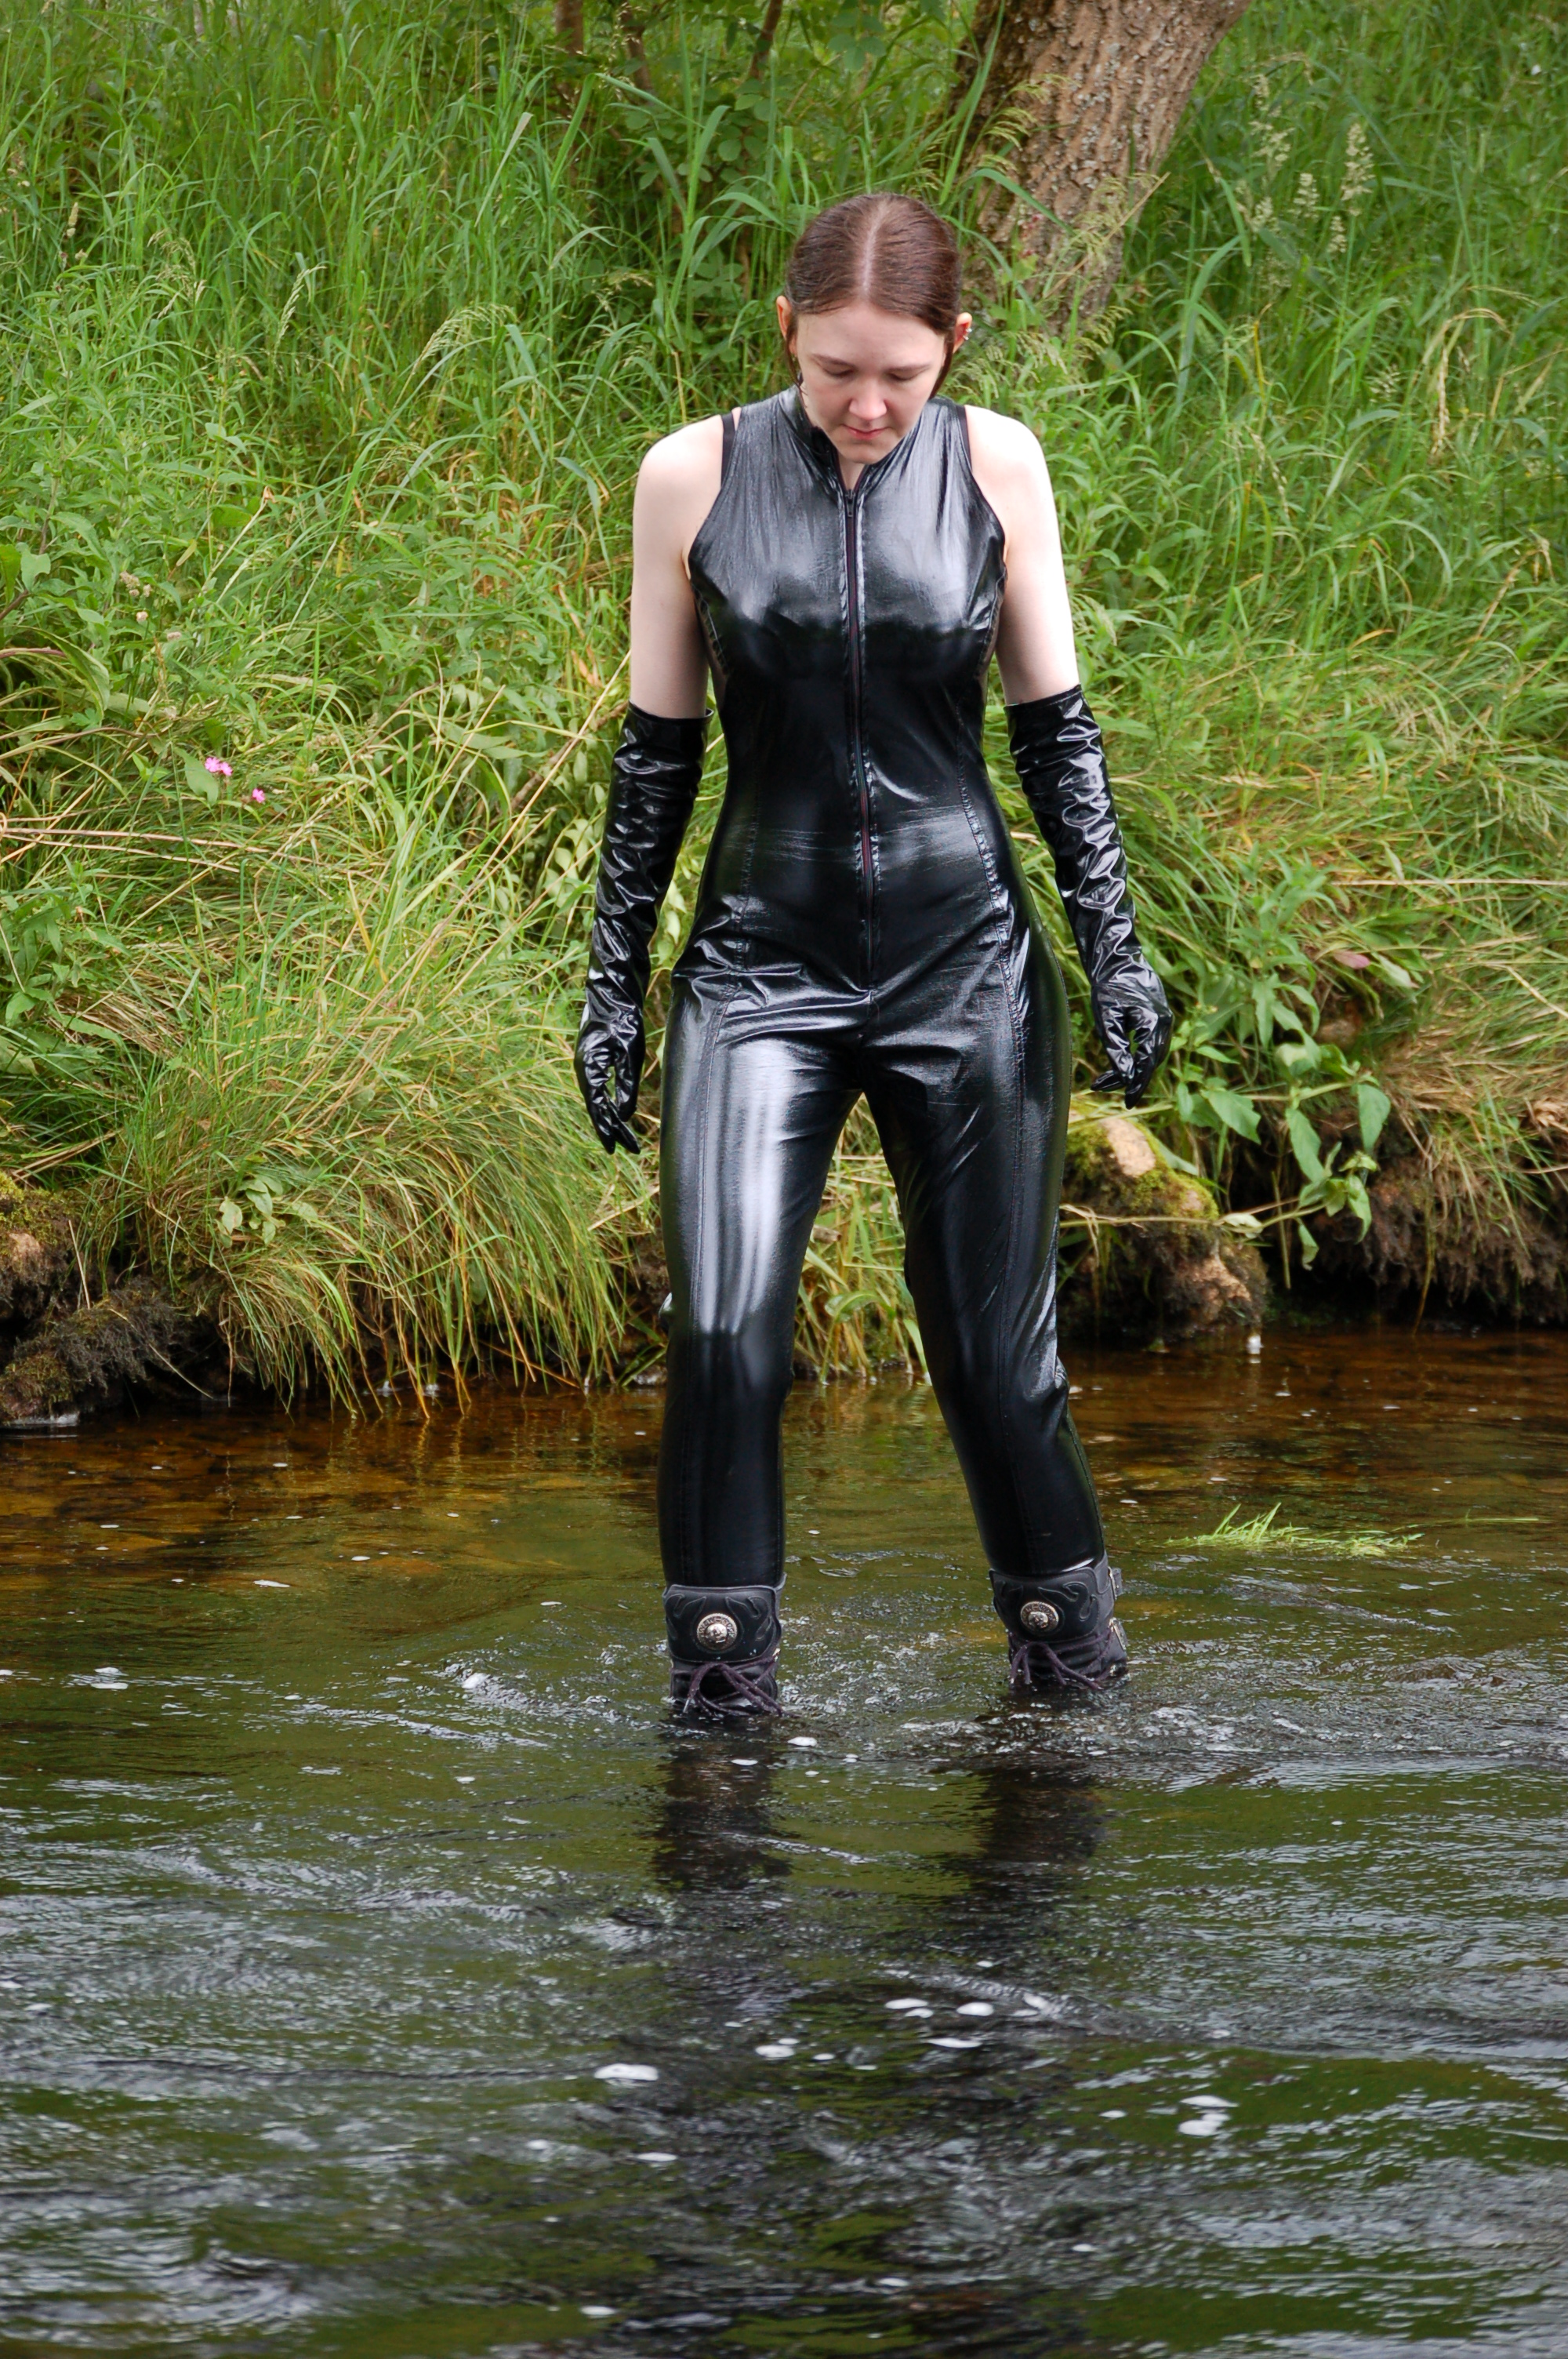 Lounge Outdoor Pvc And Boots In The River! - Chastity Takes An Outdoor